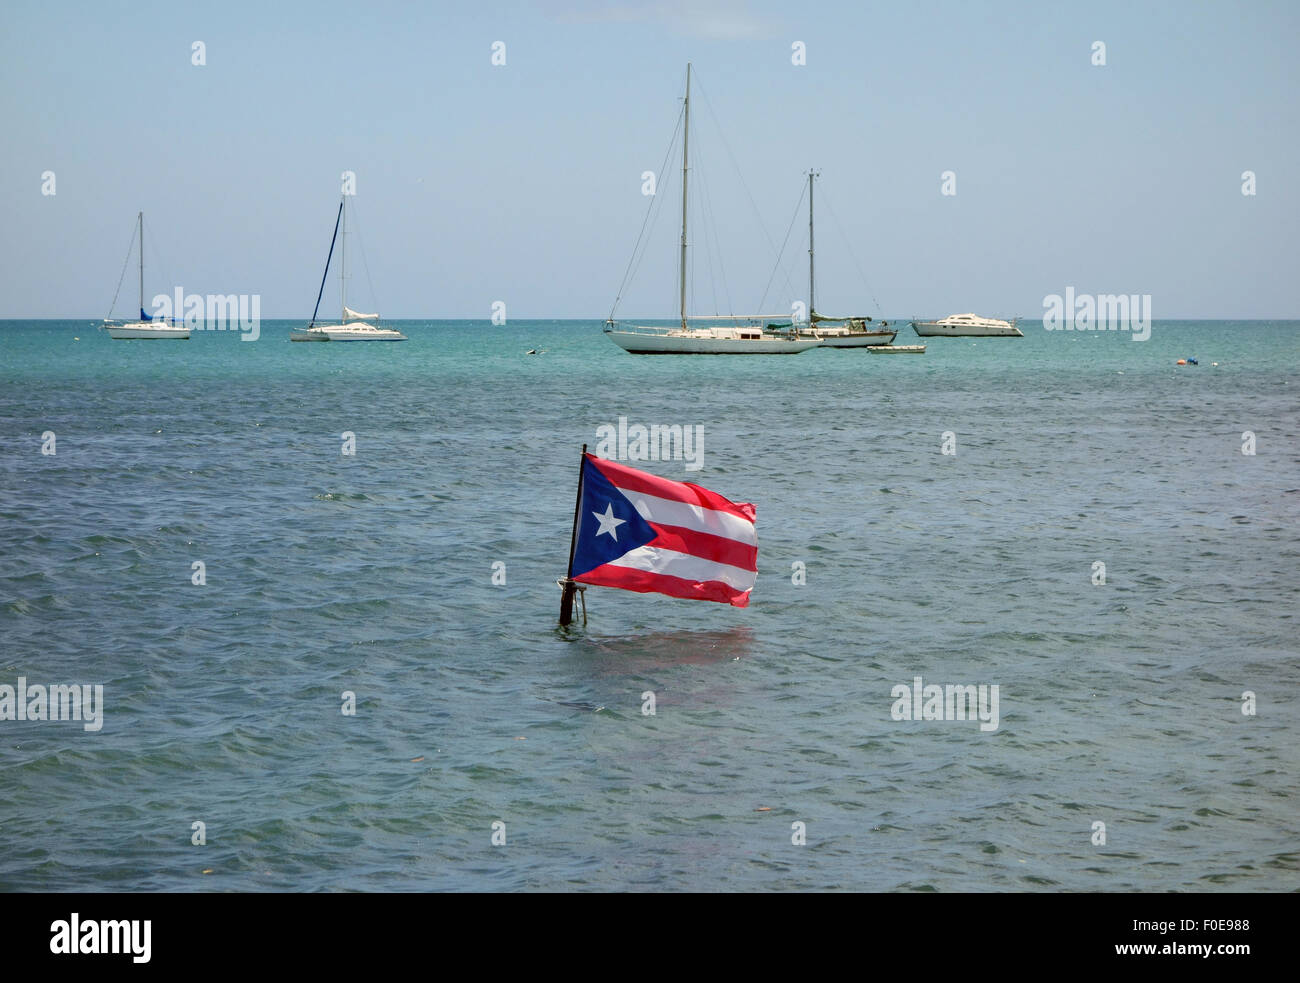 the Puerto Rican Flag appears to be sinking - Stock Image